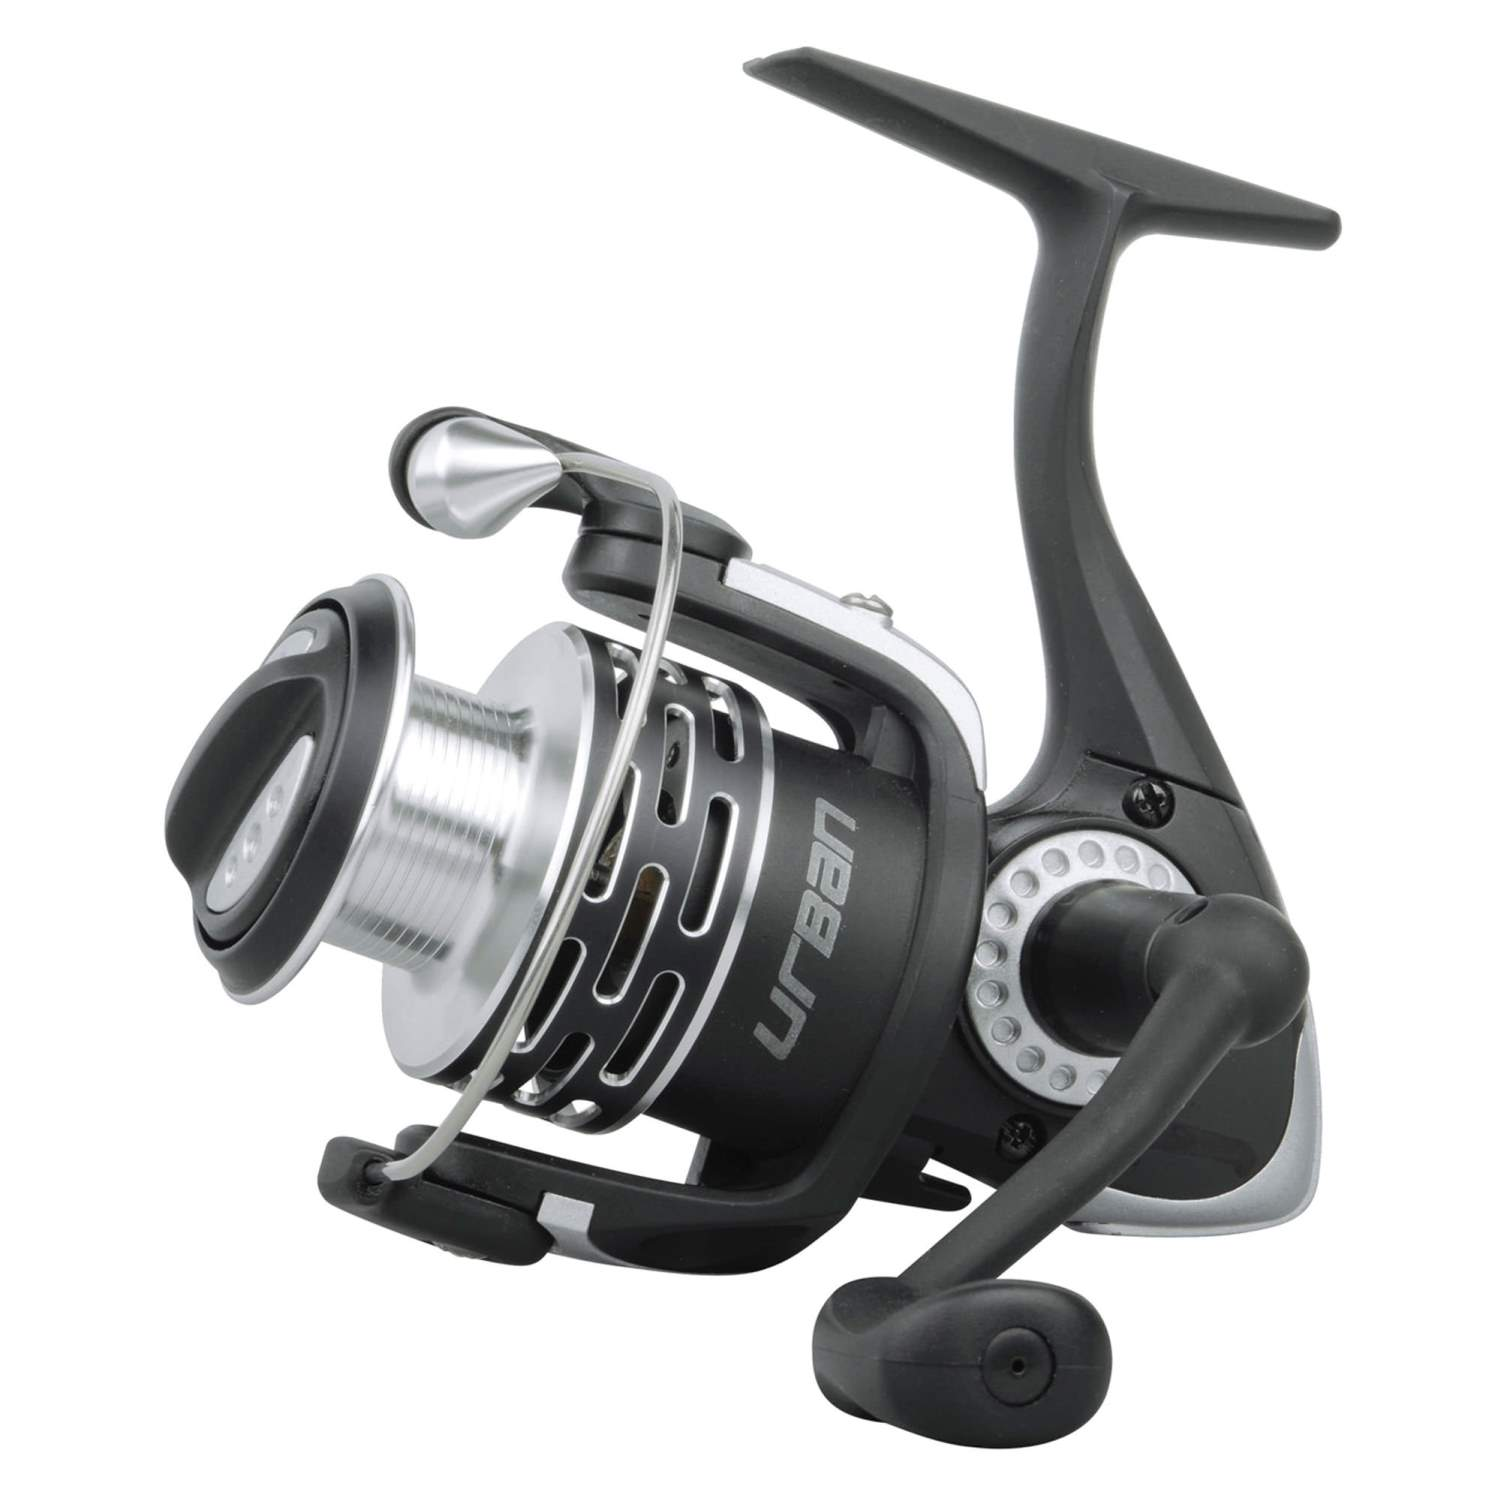 Spro Modell Urban Stationärrolle Spinnrolle 1000-4000 neues Modell Spro 2017 Angelrolle 6bb3fa